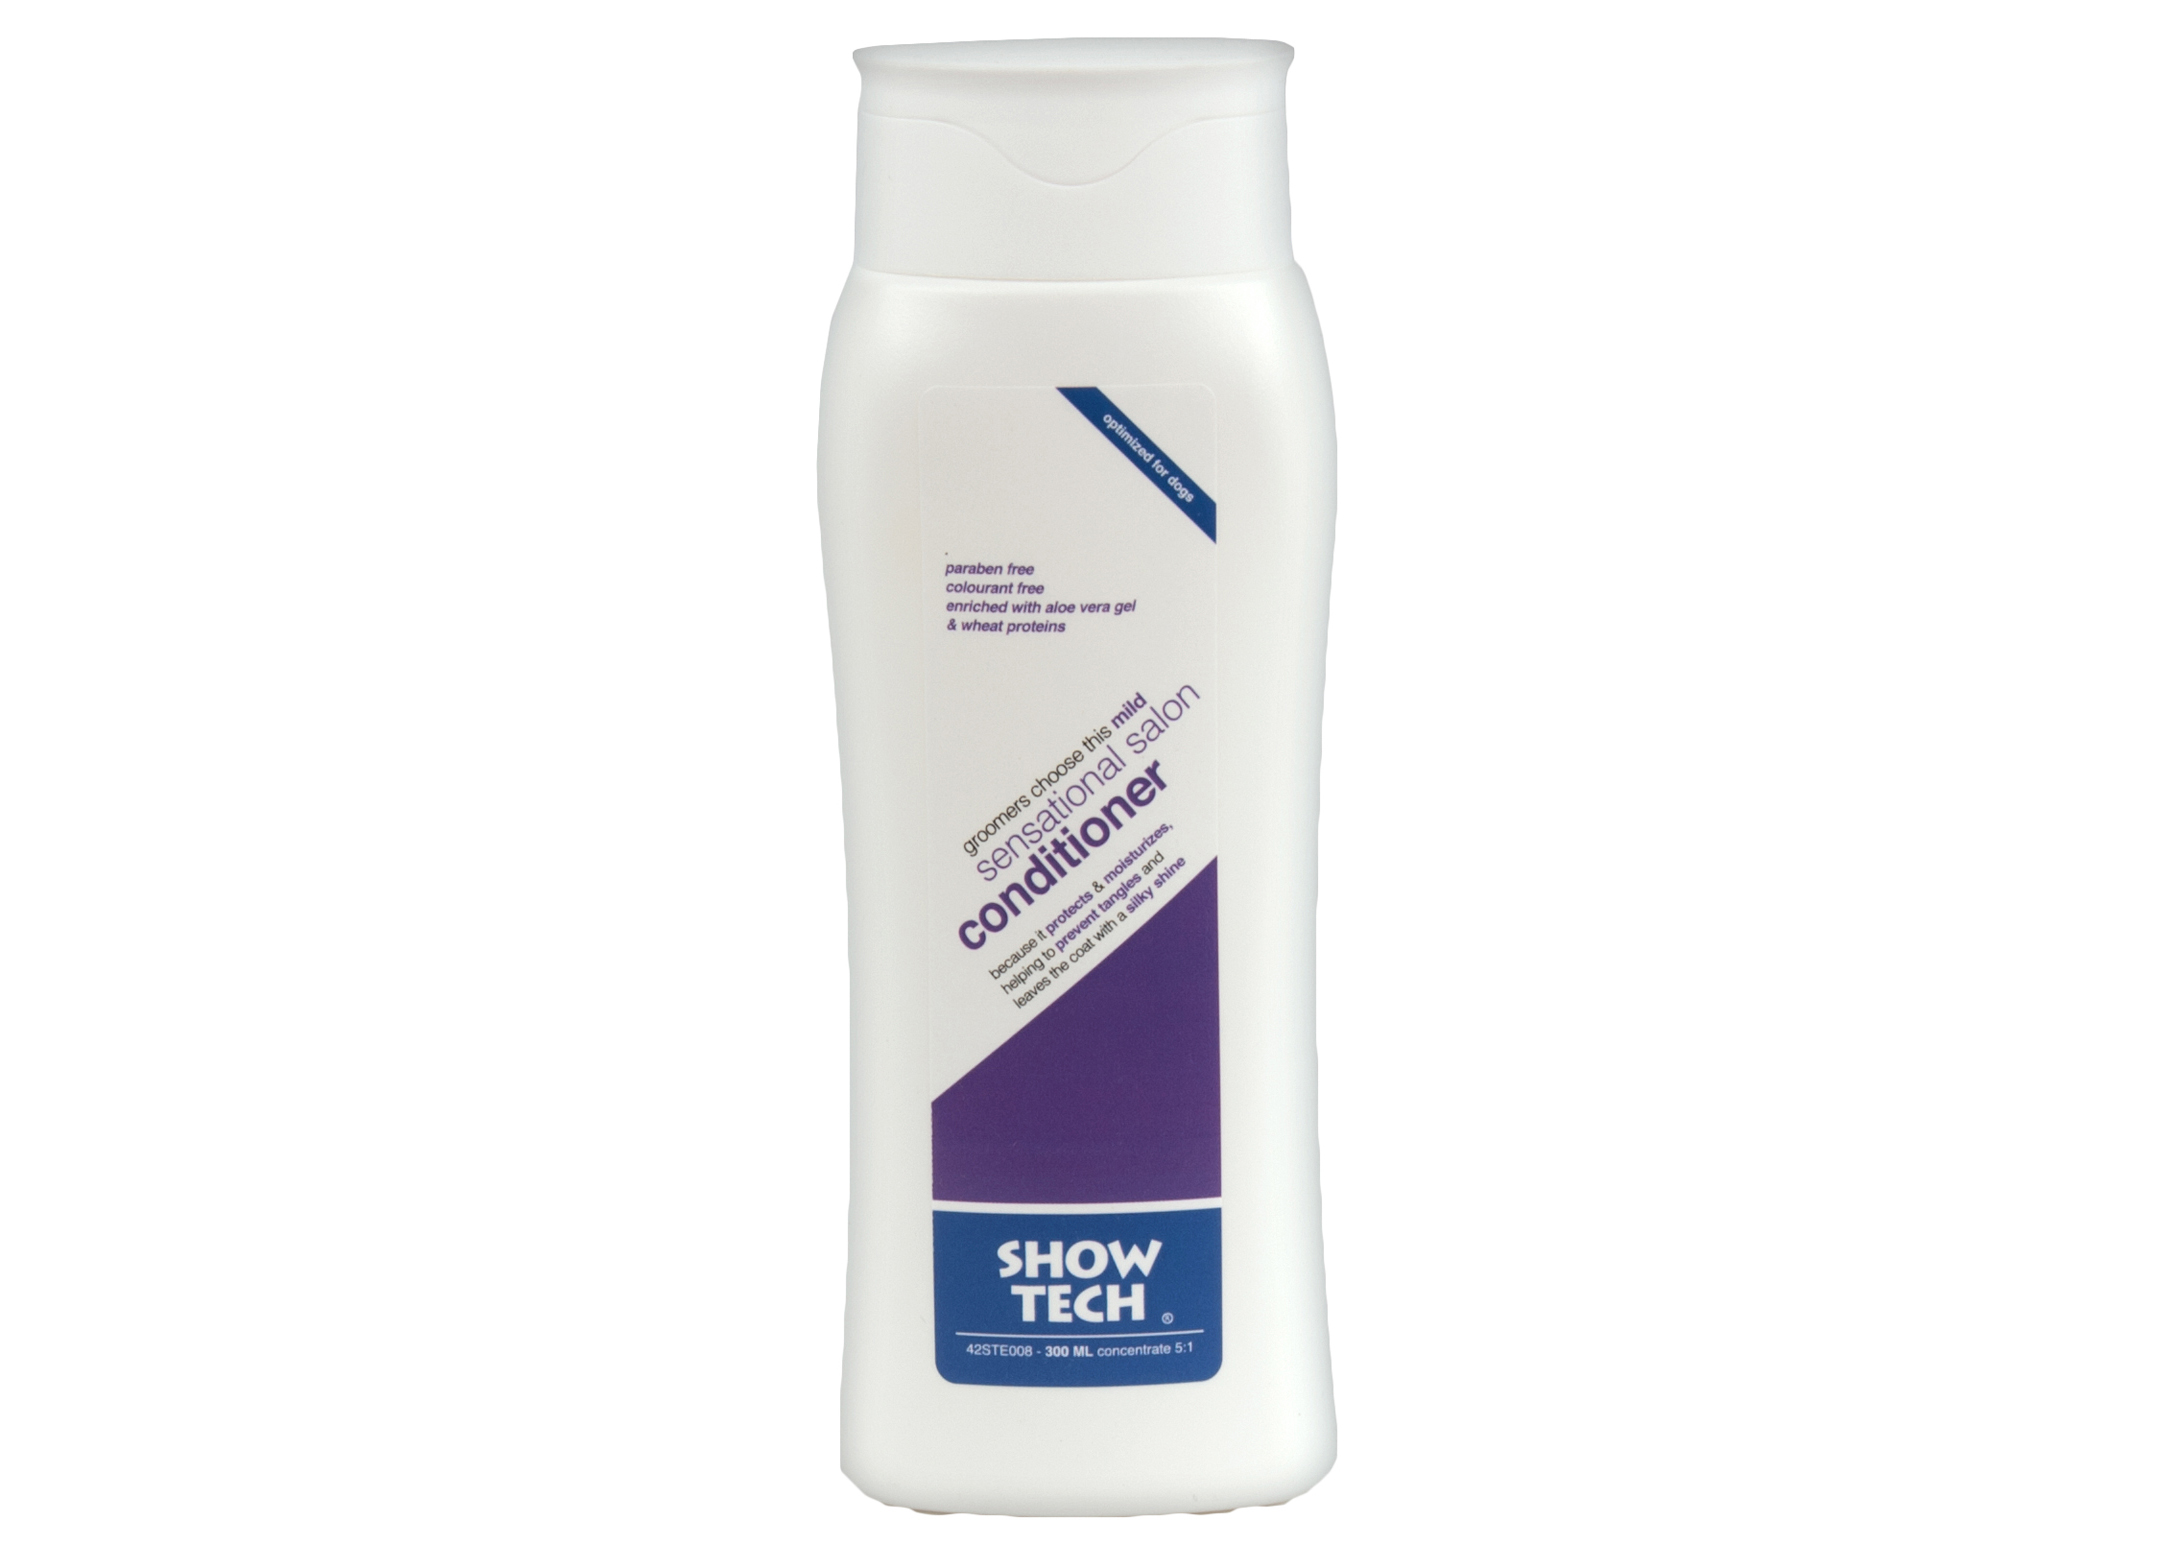 Show Tech Sensational Salon Conditioner